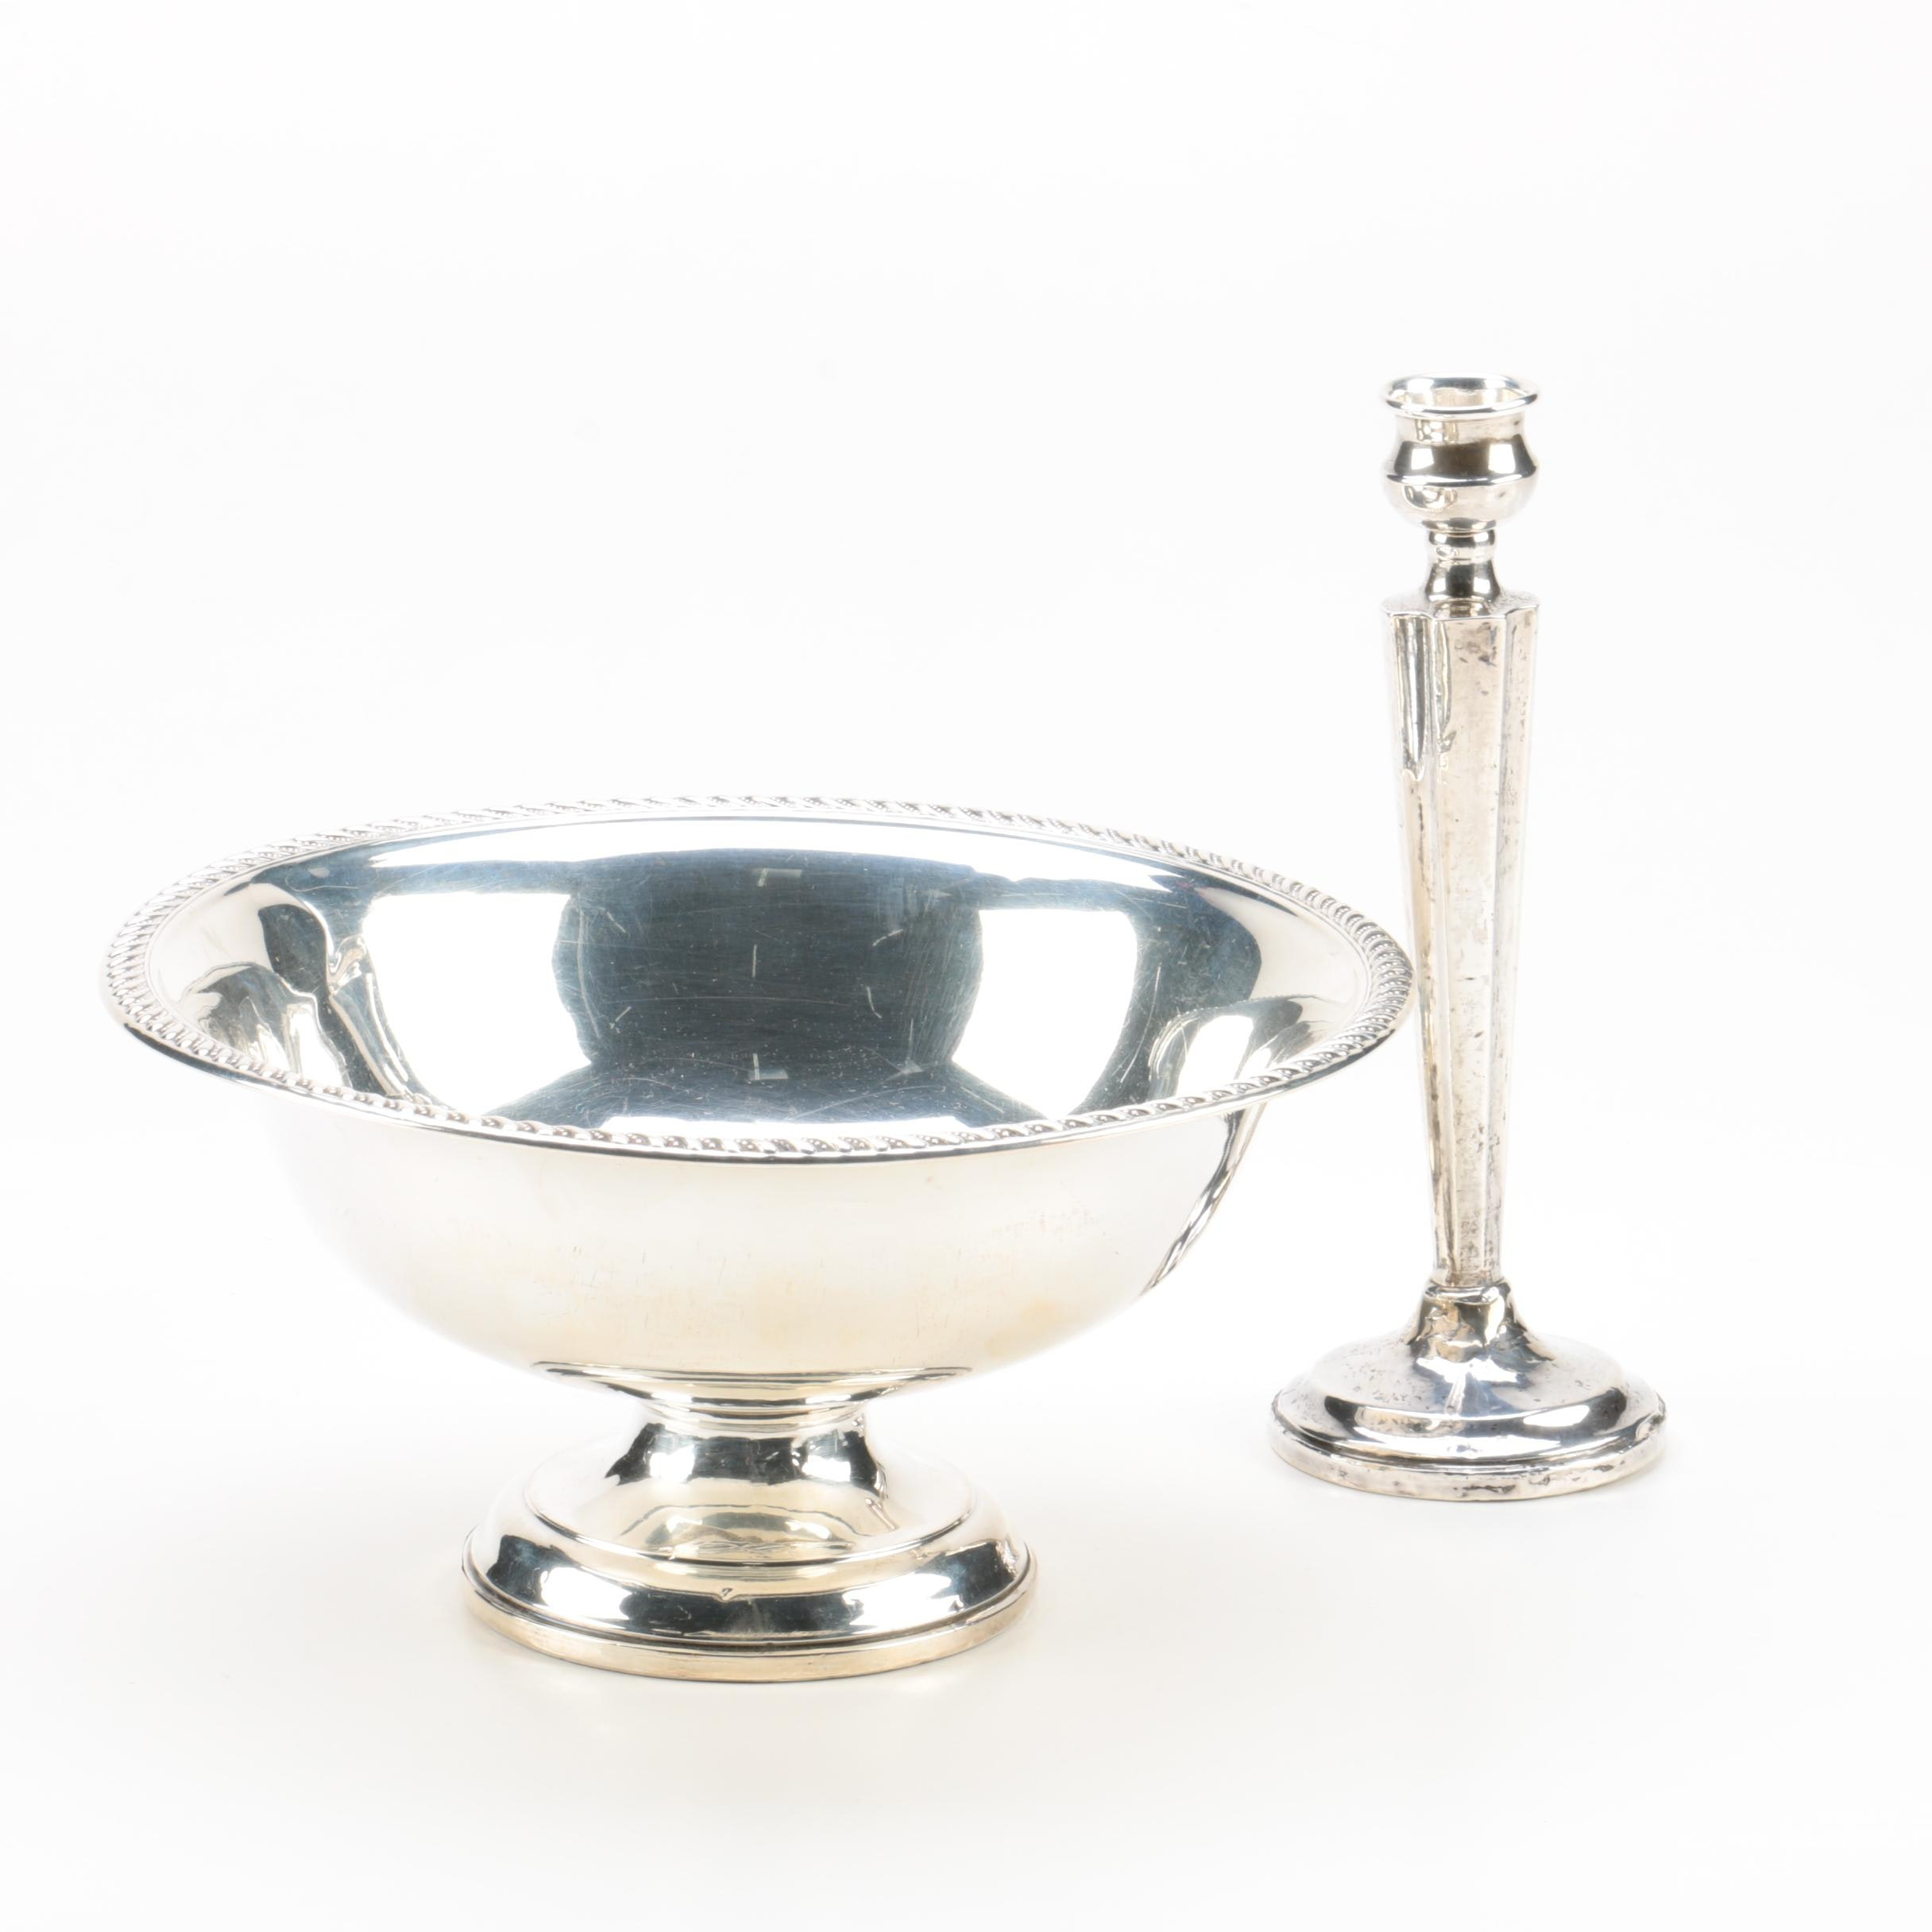 Preisner and Elgin Silversmiths Weighted Sterling Silver Tableware